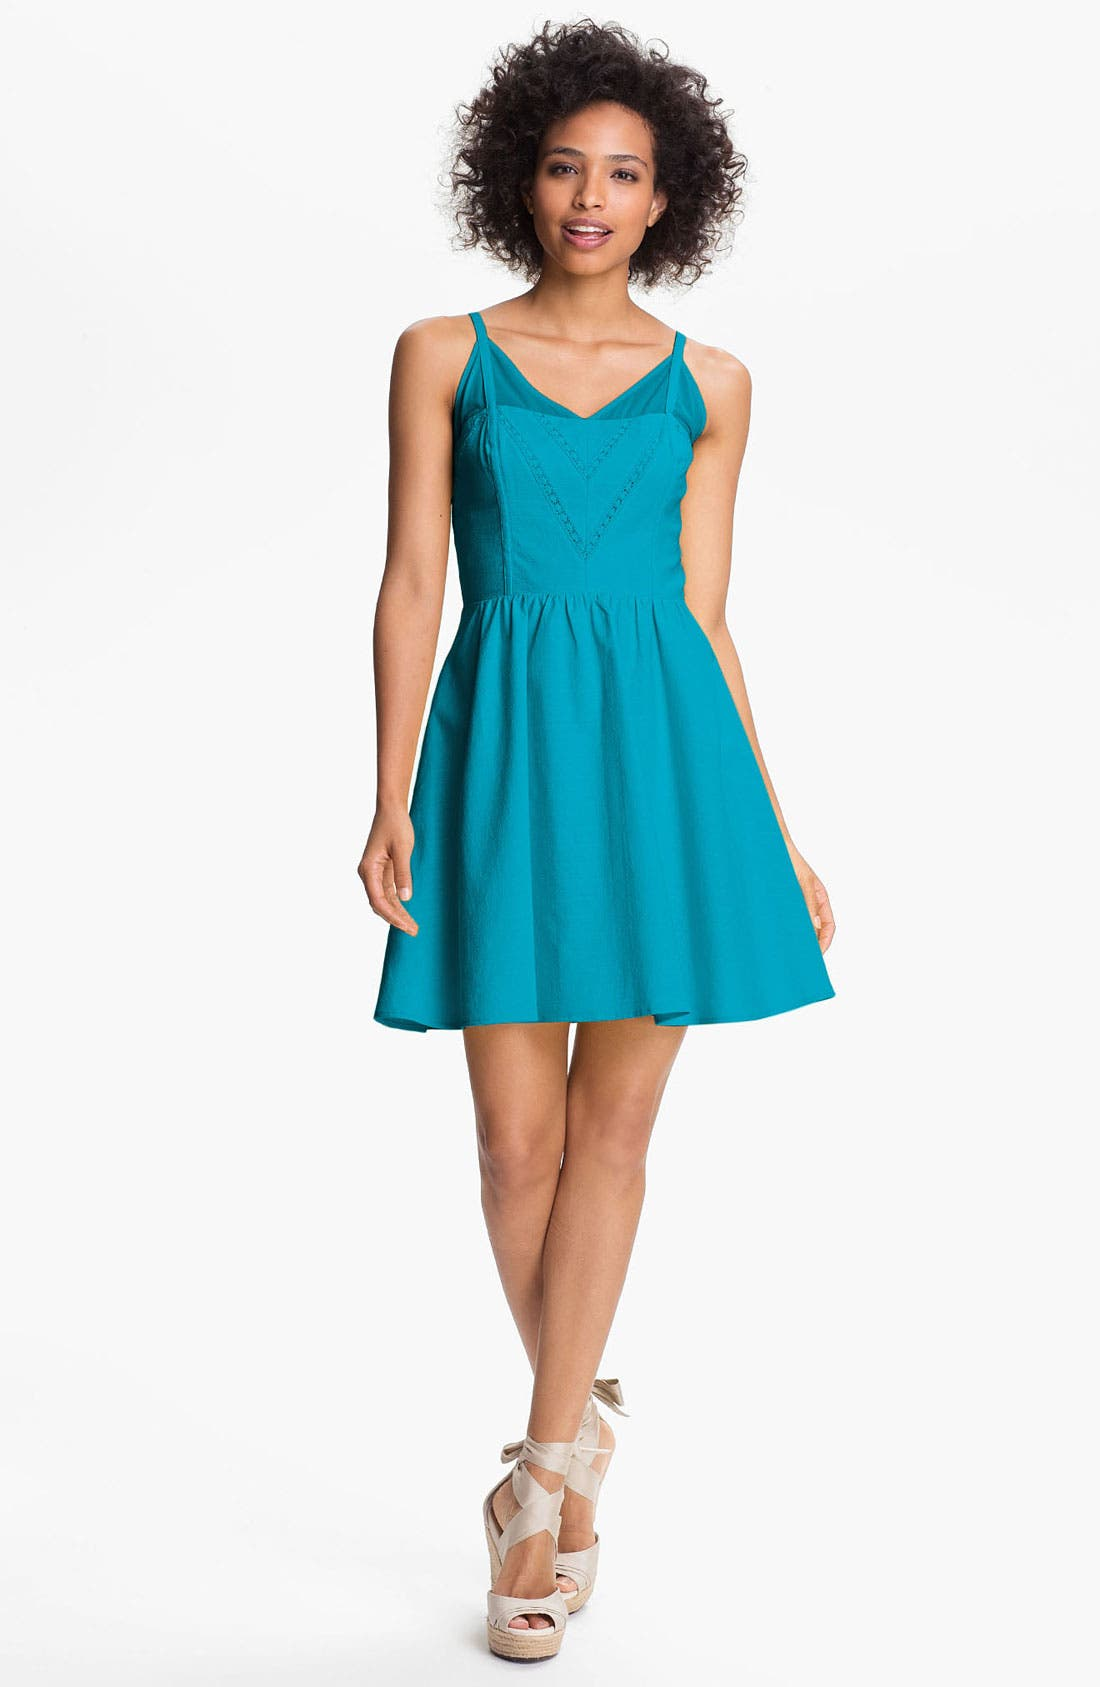 Main Image - Jessica Simpson V-Neck Fit & Flare Dress